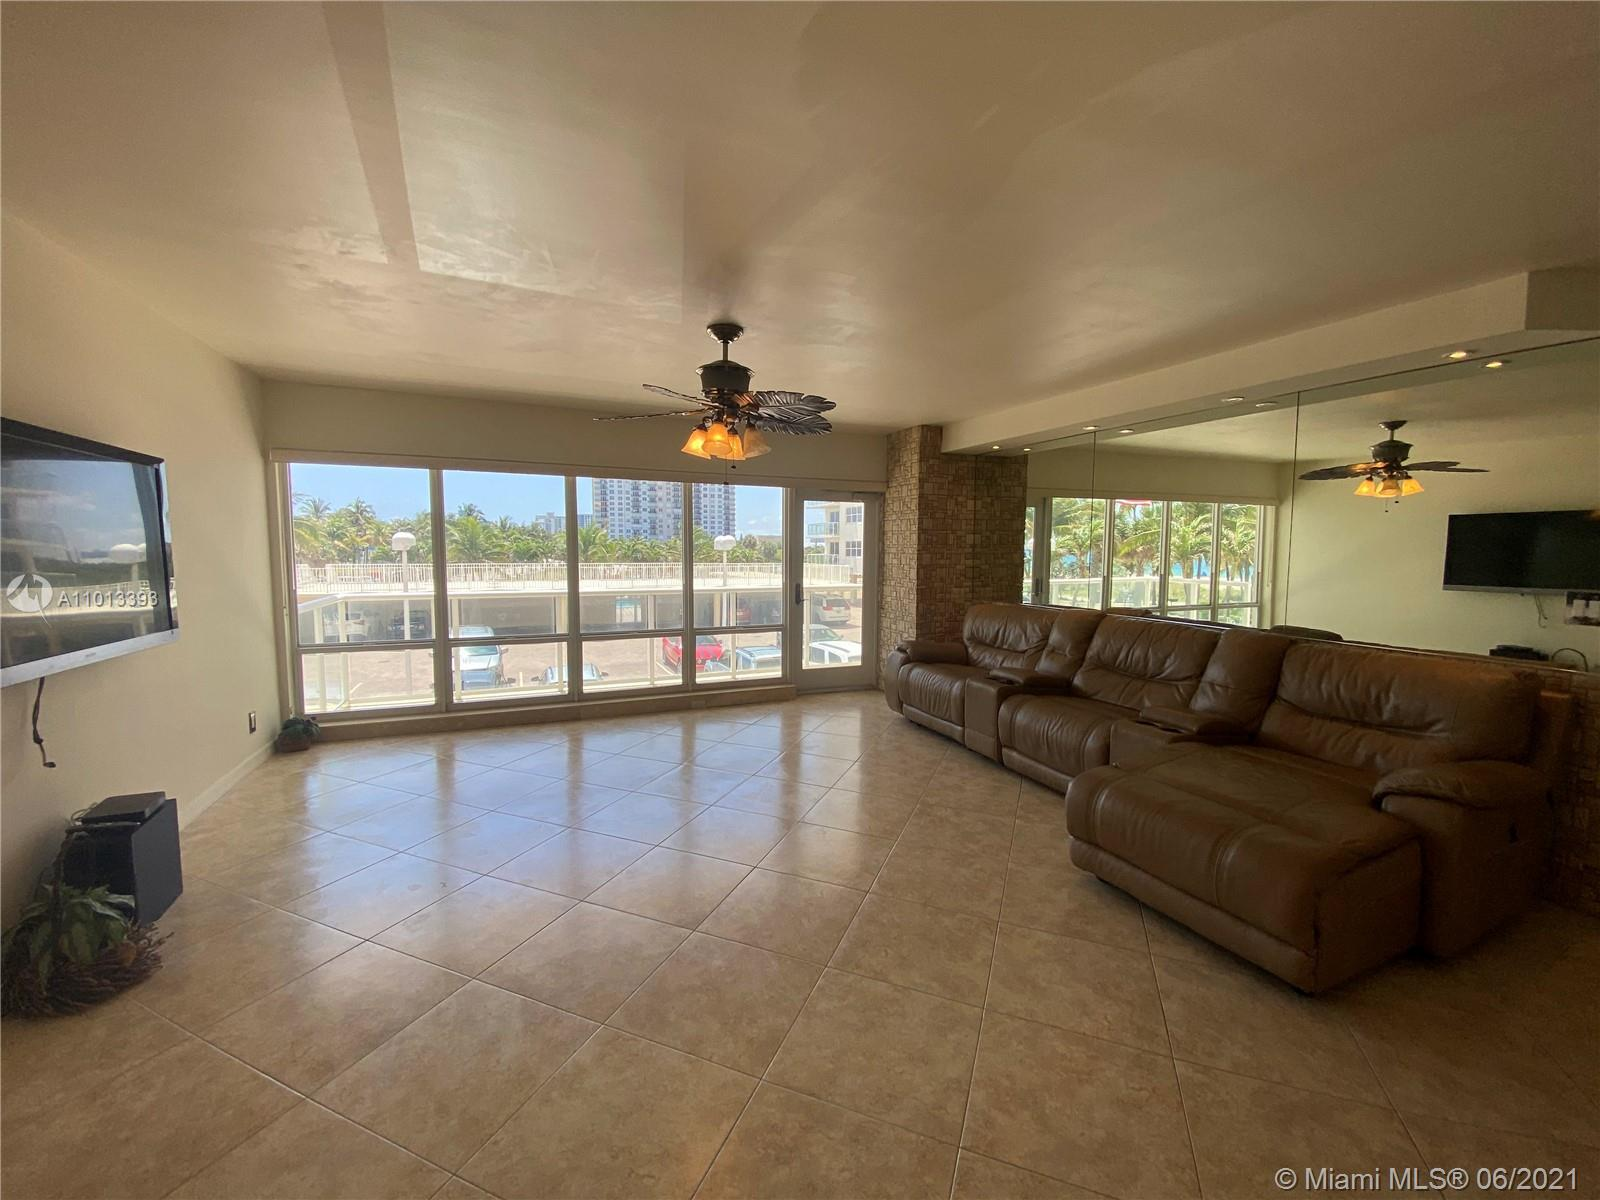 Own your own slice of paradise with this spacious 3 bedroom, 2/1 bath condo on the most desirable section of Pompano Beach. The ocean views from all rooms overlook the park, splash pad, pier, beach and ocean. Banks, drug stores, restaurants and shops are all within walking distance. The condo has stoned and mirrored accents and has been newly-painted. The kitchen is fitted with stainless steel appliances, and granite countertops in the kitchen and baths. A stackable full-sized Samsung washer and dryer is conveniently in the unit. All windows are high impact. An oversized balcony is perfect for watching the sunrise with your morning coffee. The condo association provides you with covered parking, 24 hour security, gymnasium, game room, library, swimming pool and more. Move in Ready!